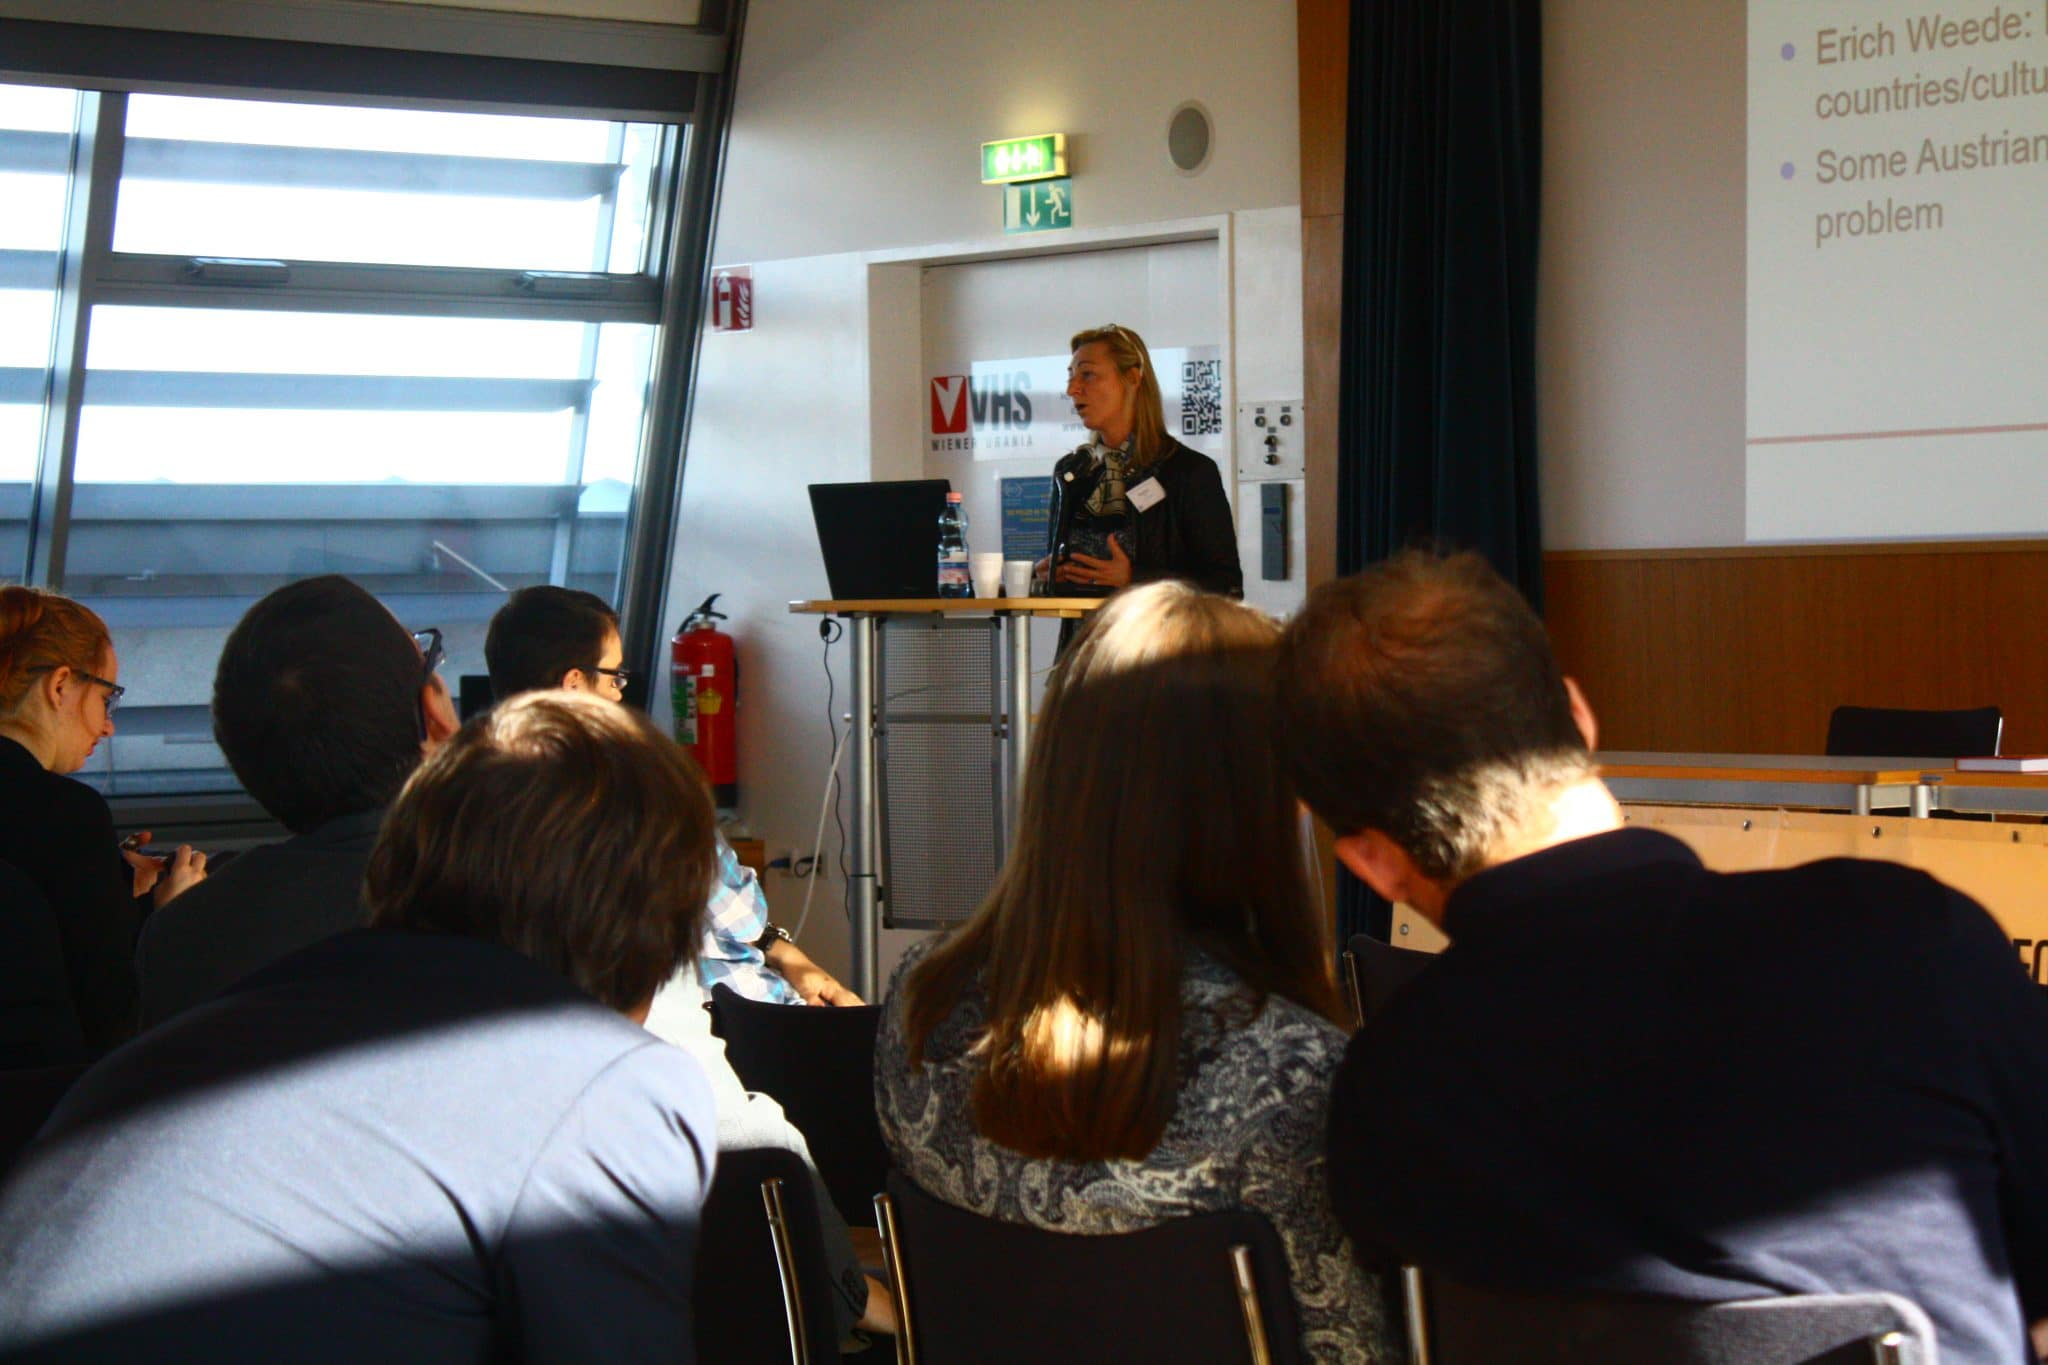 Barbara Kolm spoke at the Vienna Regional Conference of European Students for Liberty • IMG 7625